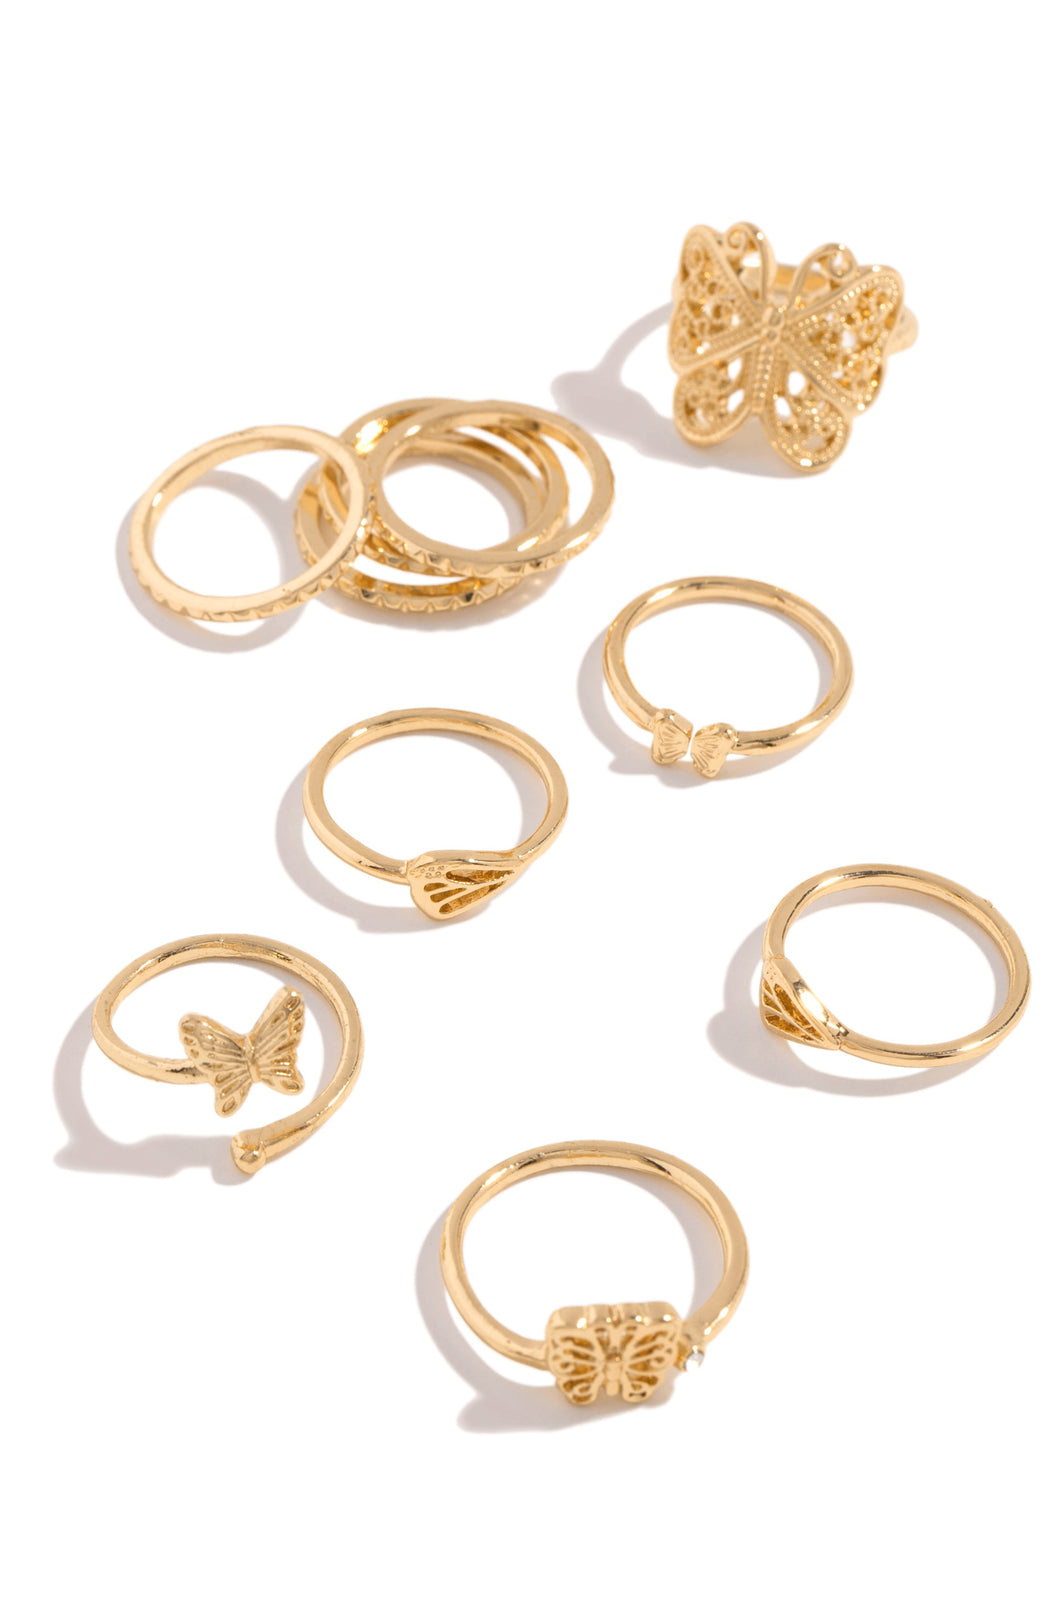 Briella Ring Set - Gold